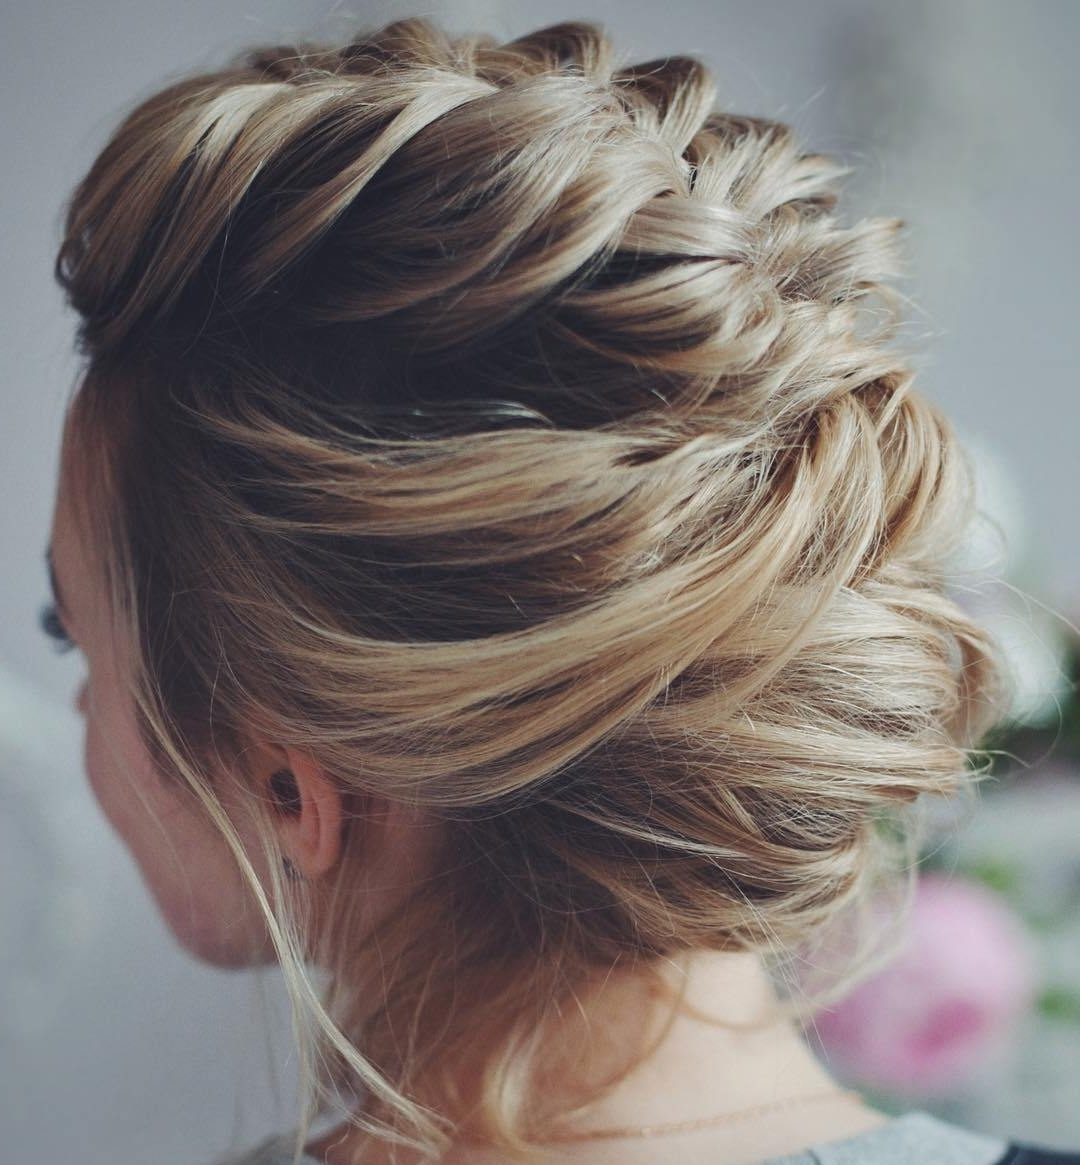 50 Hottest Prom Hairstyles For Short Hair Throughout Most Current Brunette Macrame Braid Hairstyles (View 11 of 20)